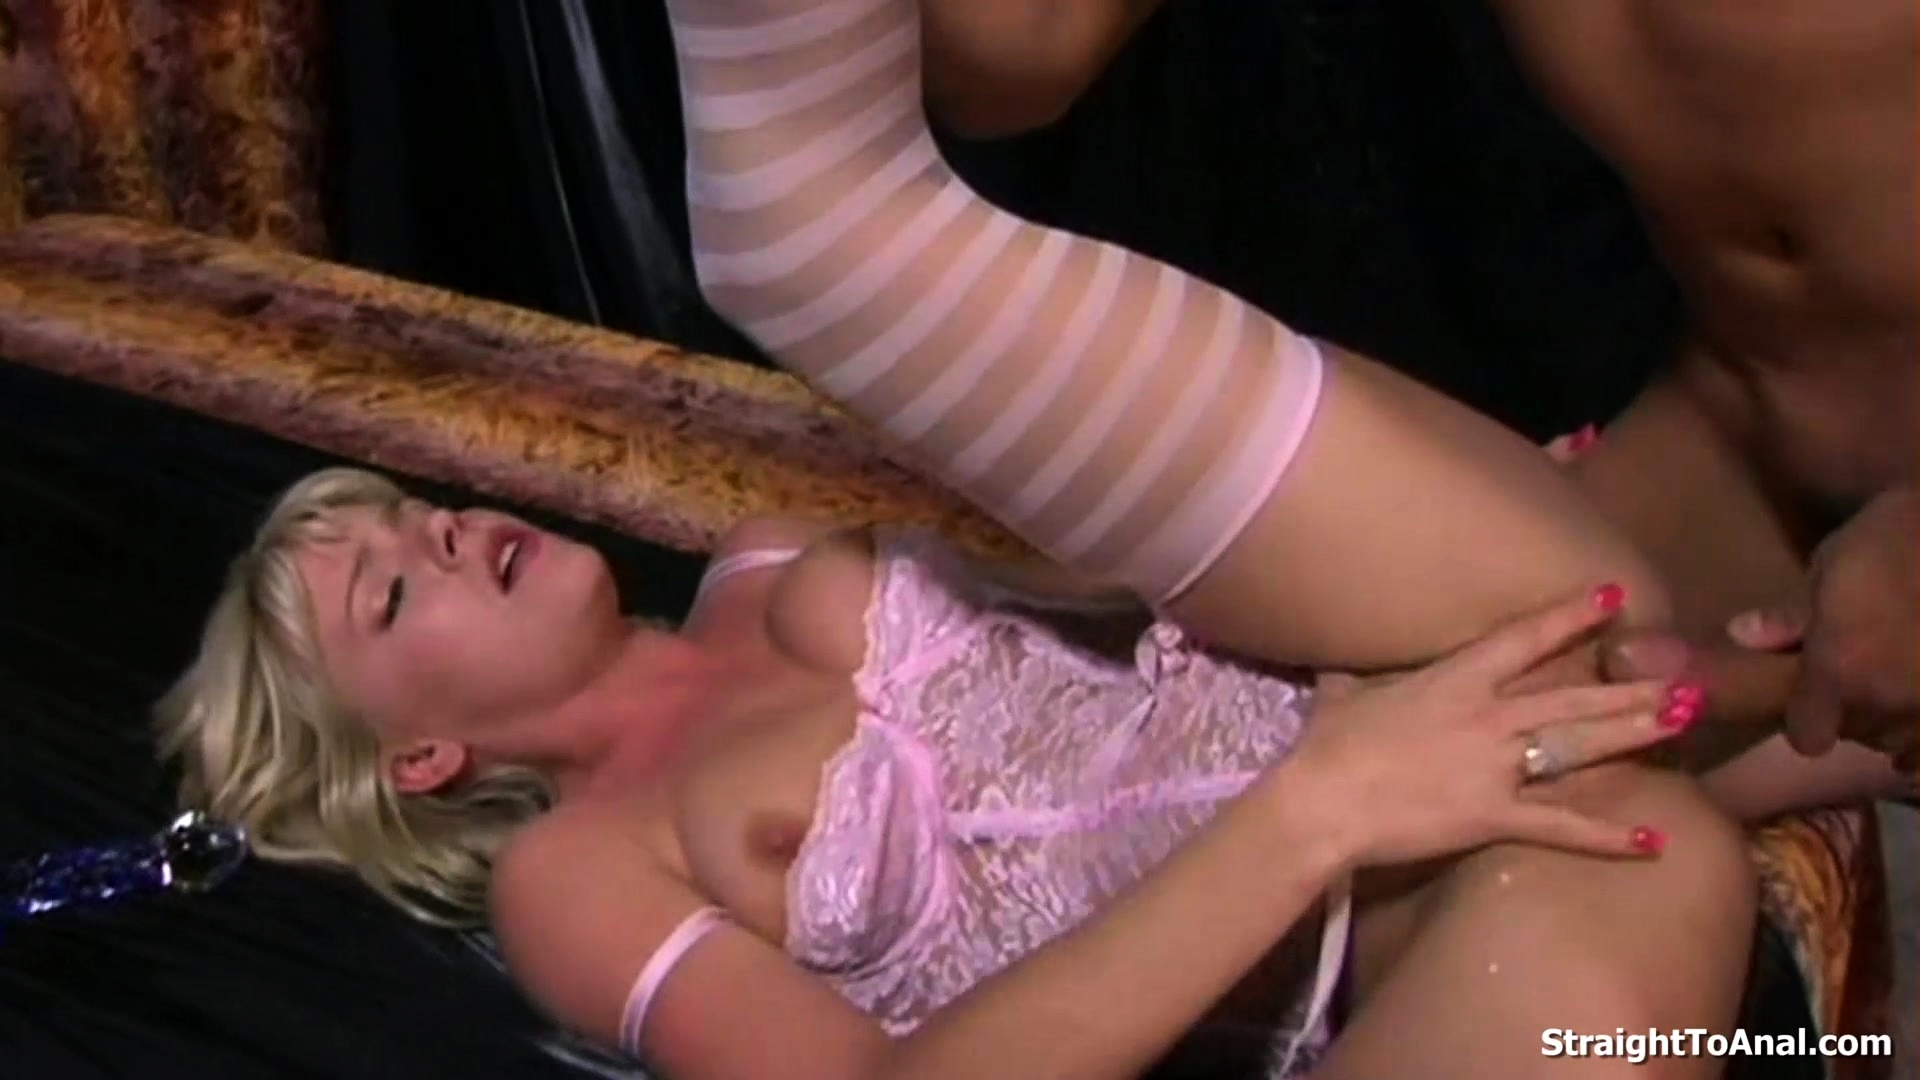 Butt Plug And Dick Fucked Anal Of Missy Monroe